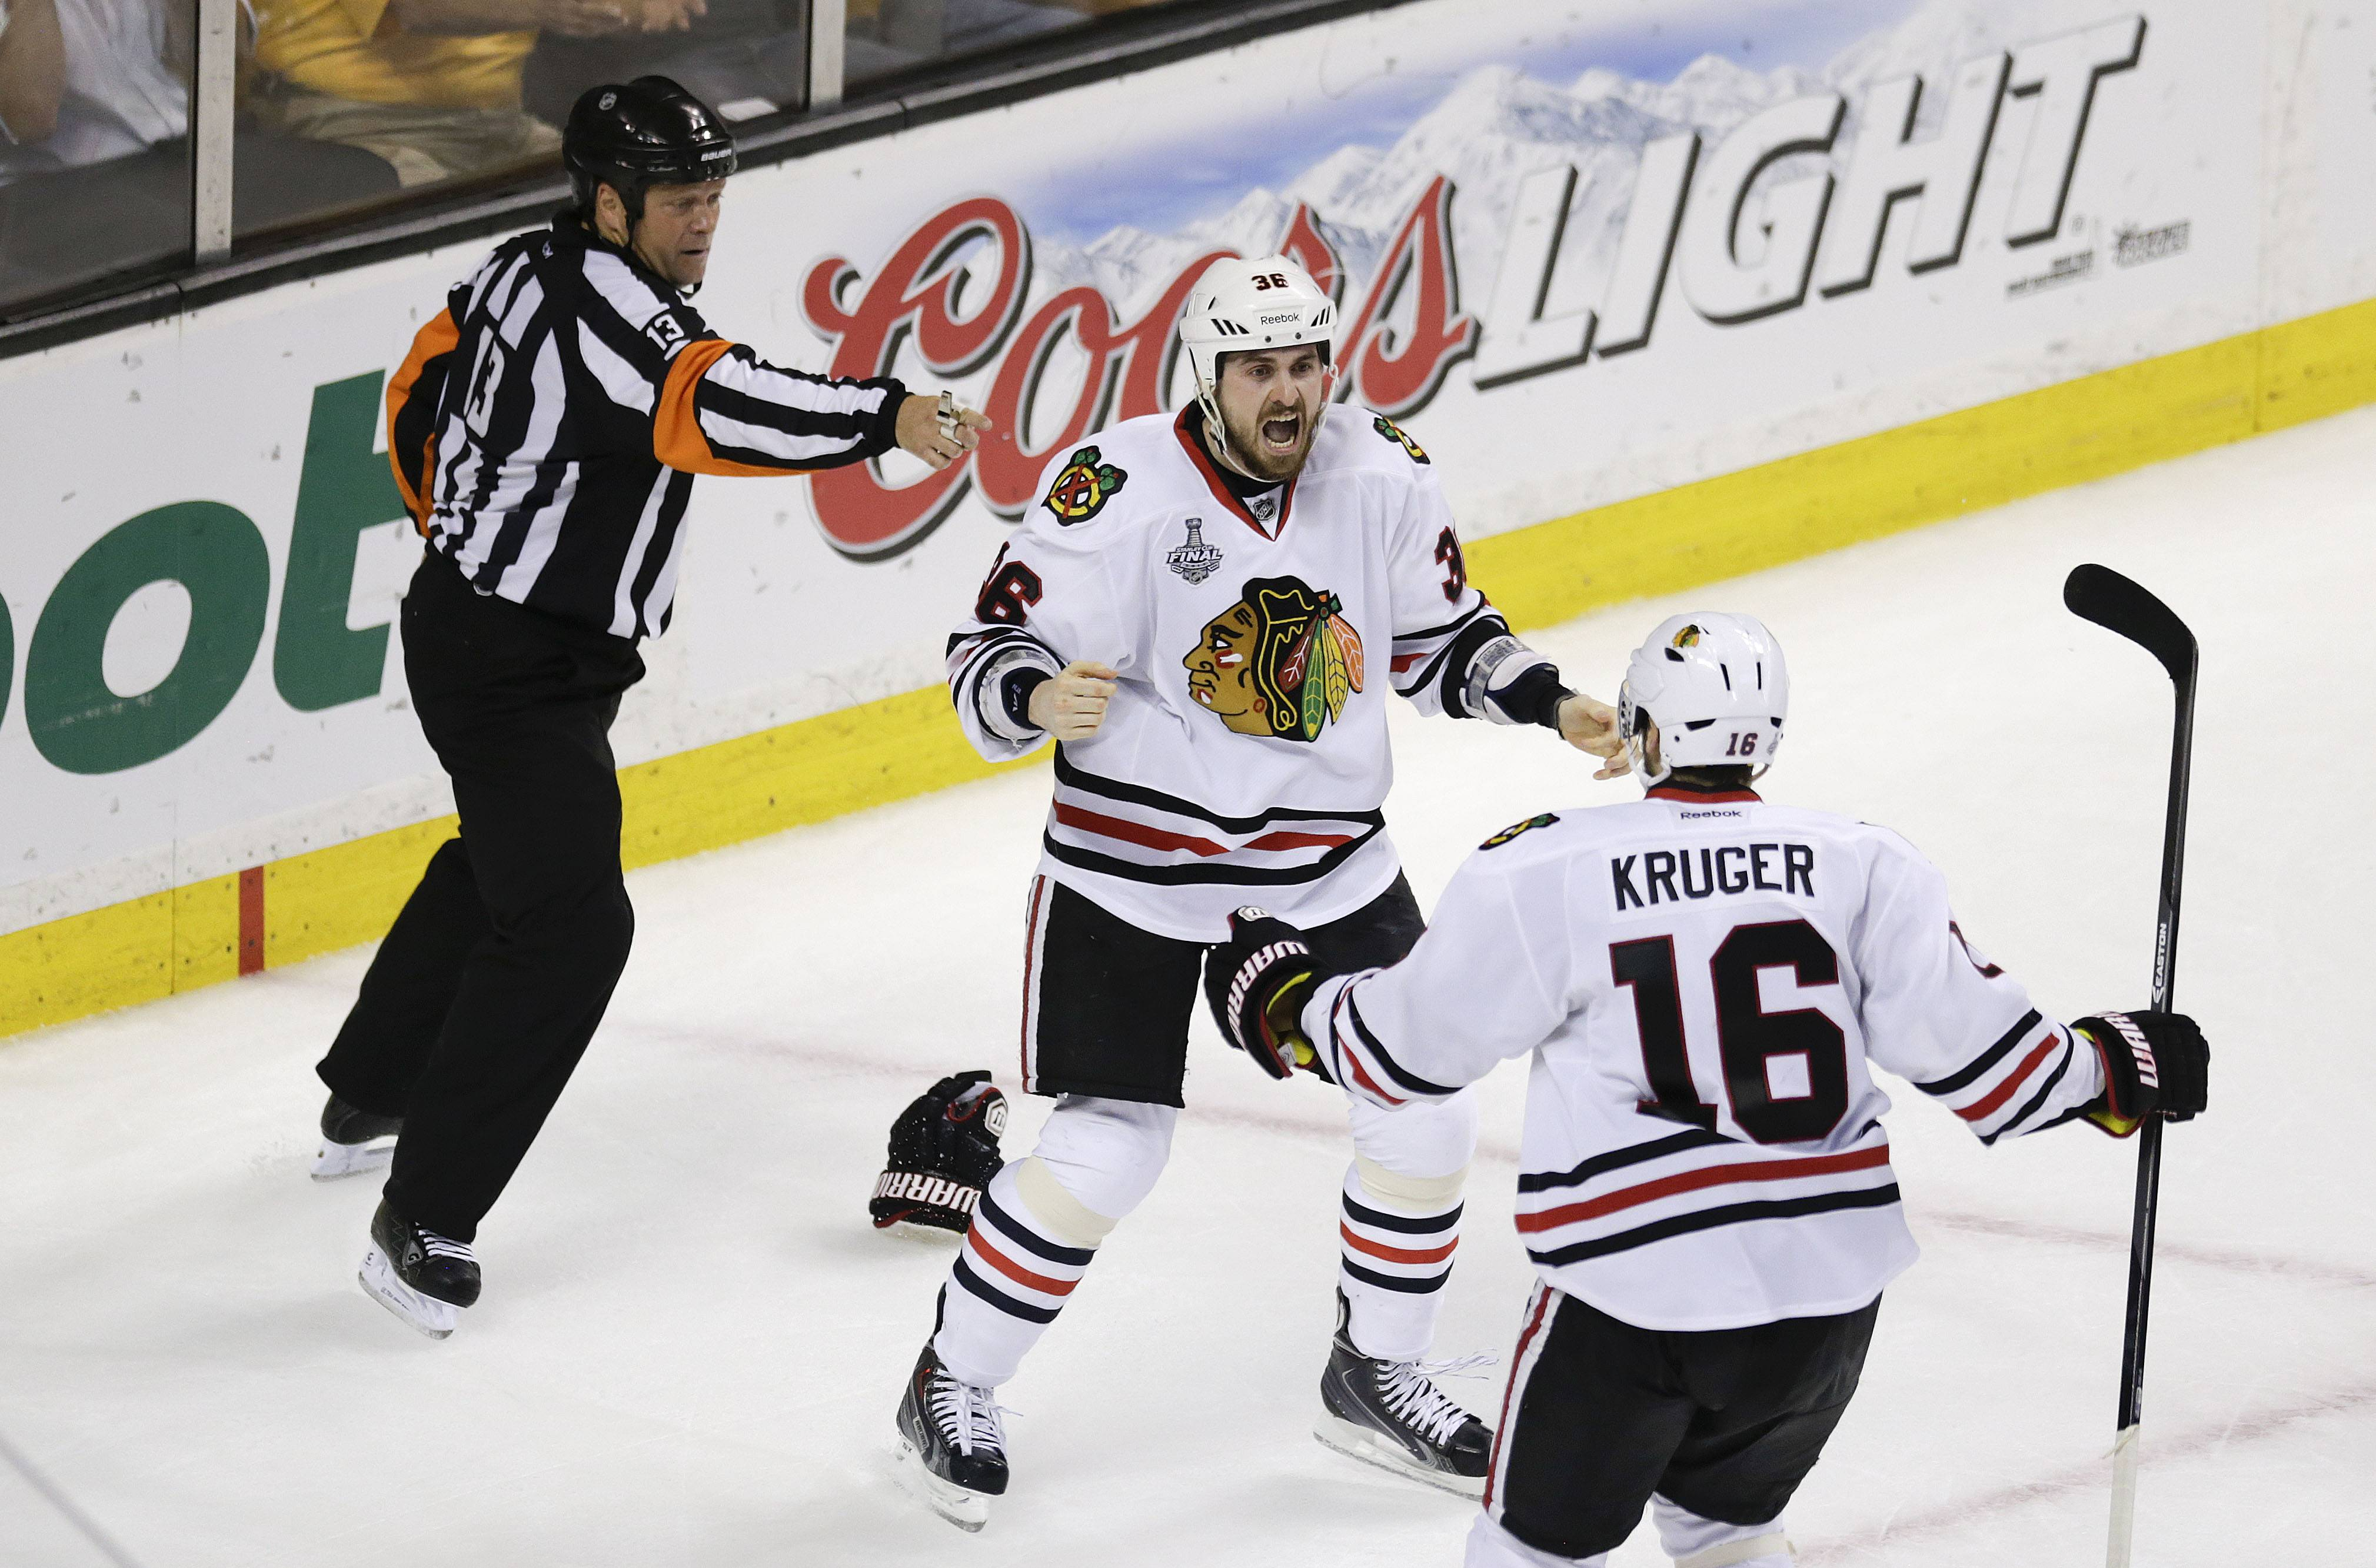 Blackhawks center Dave Bolland (36) celebrates his game winning goal against the Boston Bruins with  Blackhawks center Marcus Kruger (16) Monday during the third period in Game 6 of the Stanley Cup Finals in Boston. The Blackhawks won 3-2.